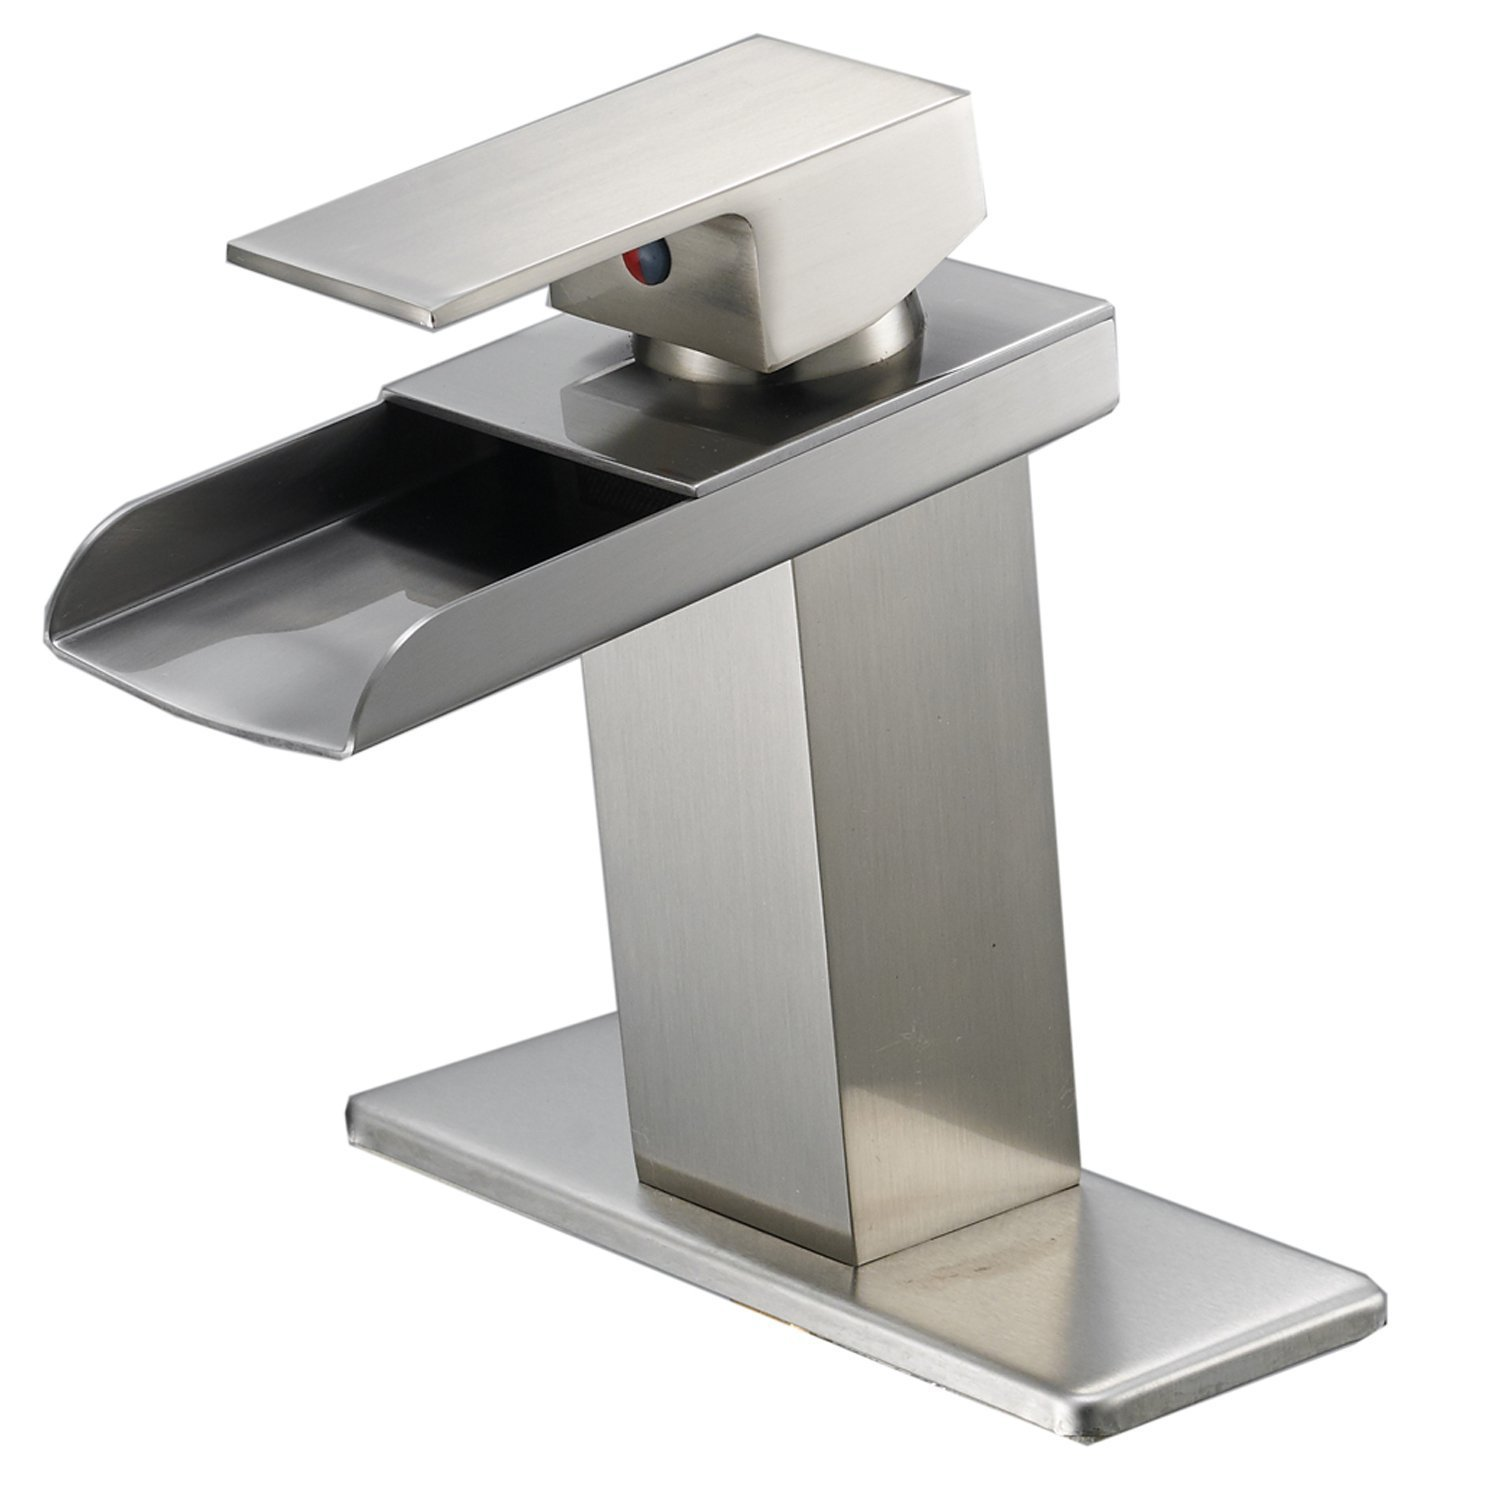 Bathlavish Waterfall Bathroom Sink Faucet Brushed Nickel Single Handle One Hole Deck Mount Lavatory Faucet Commercial